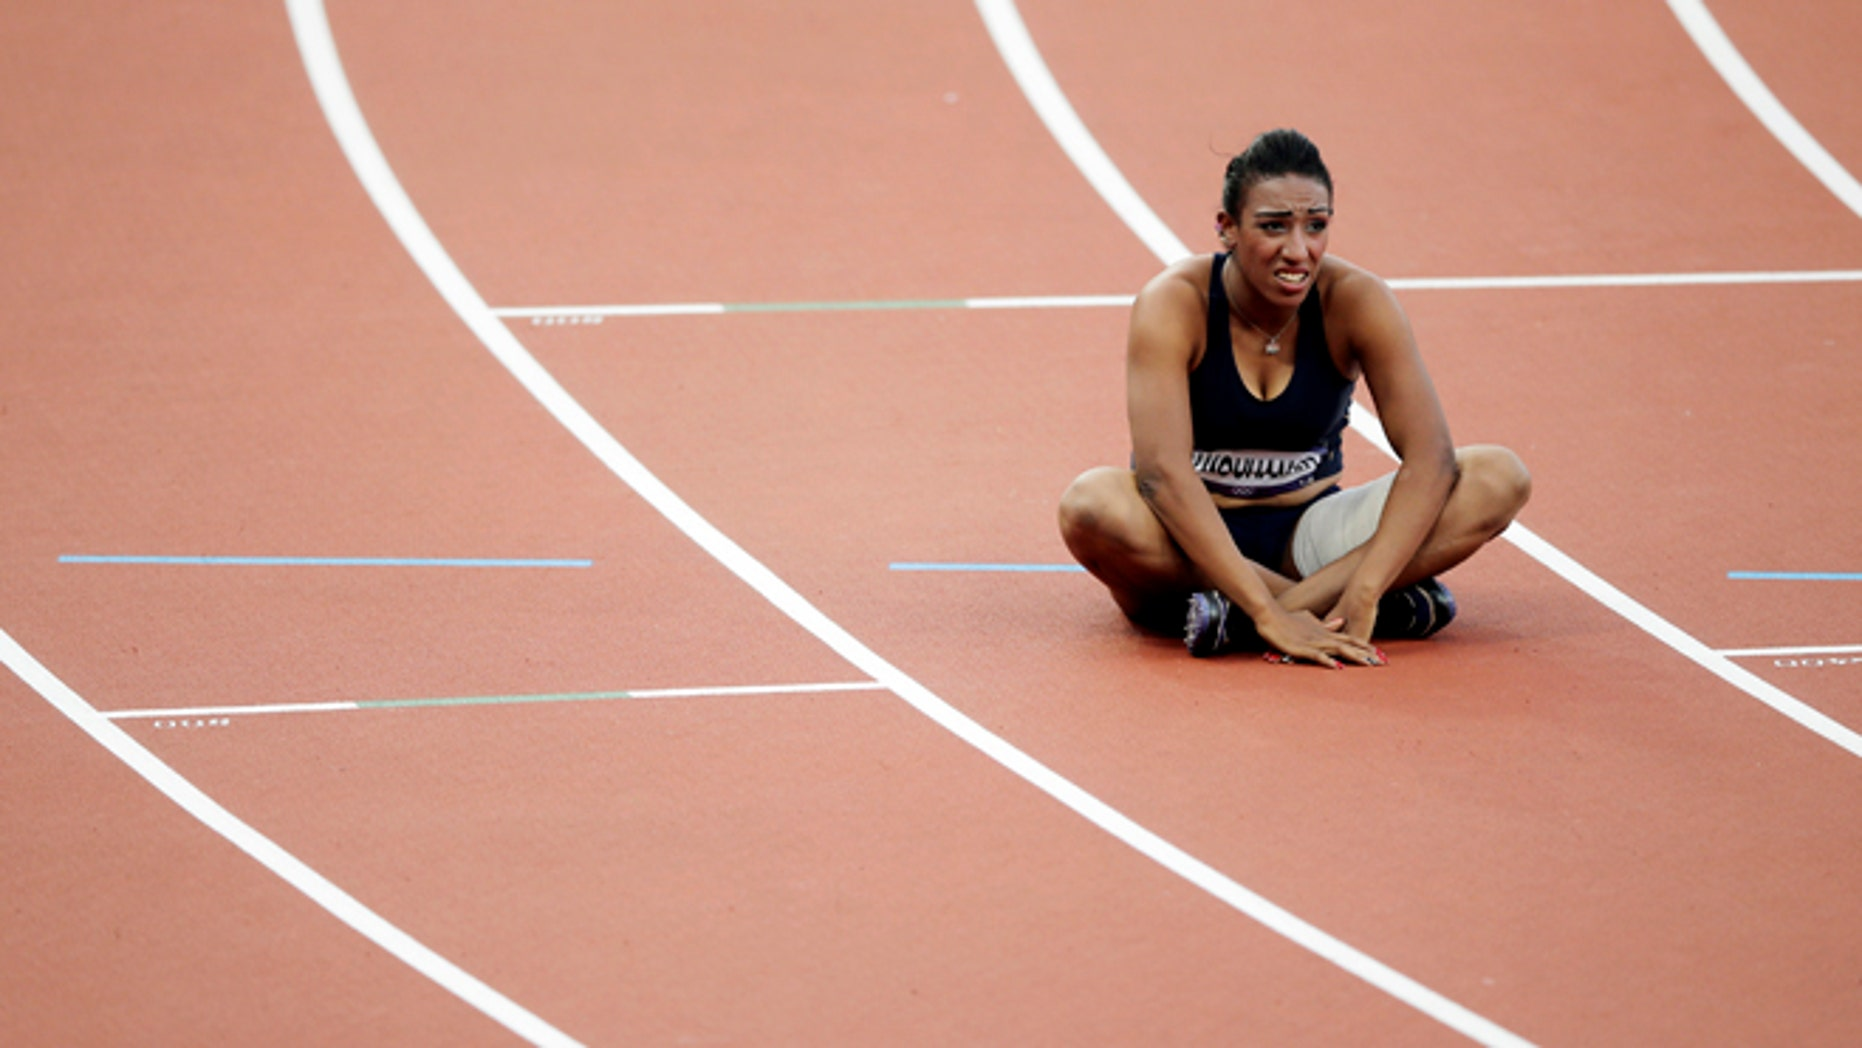 Aug. 5, 2012: Syria's Ghfran Almouhamad sits in her lane after a women's 400-meter hurdles qualifying race at the London Olympics.